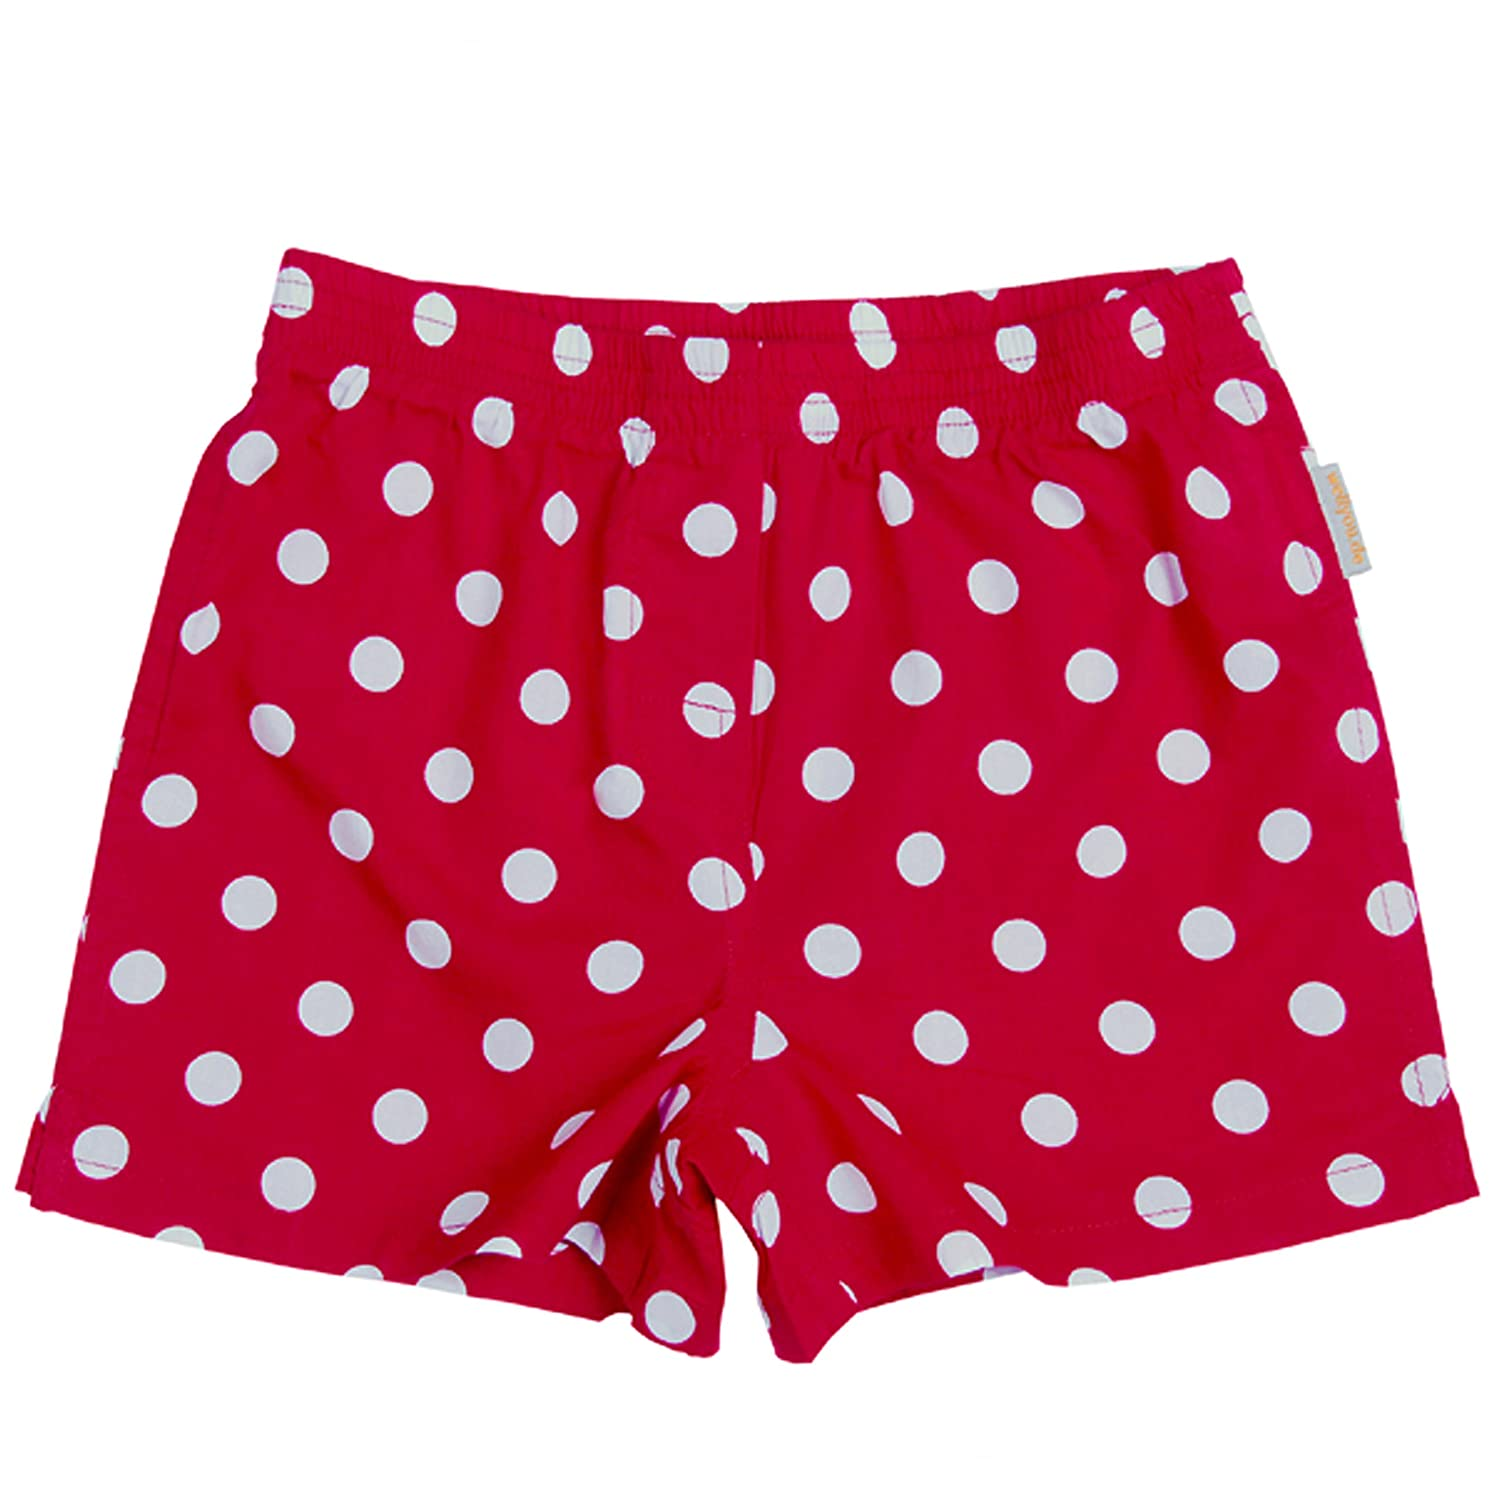 wellyou Kinder Boxershorts Tupfen rot/weiss